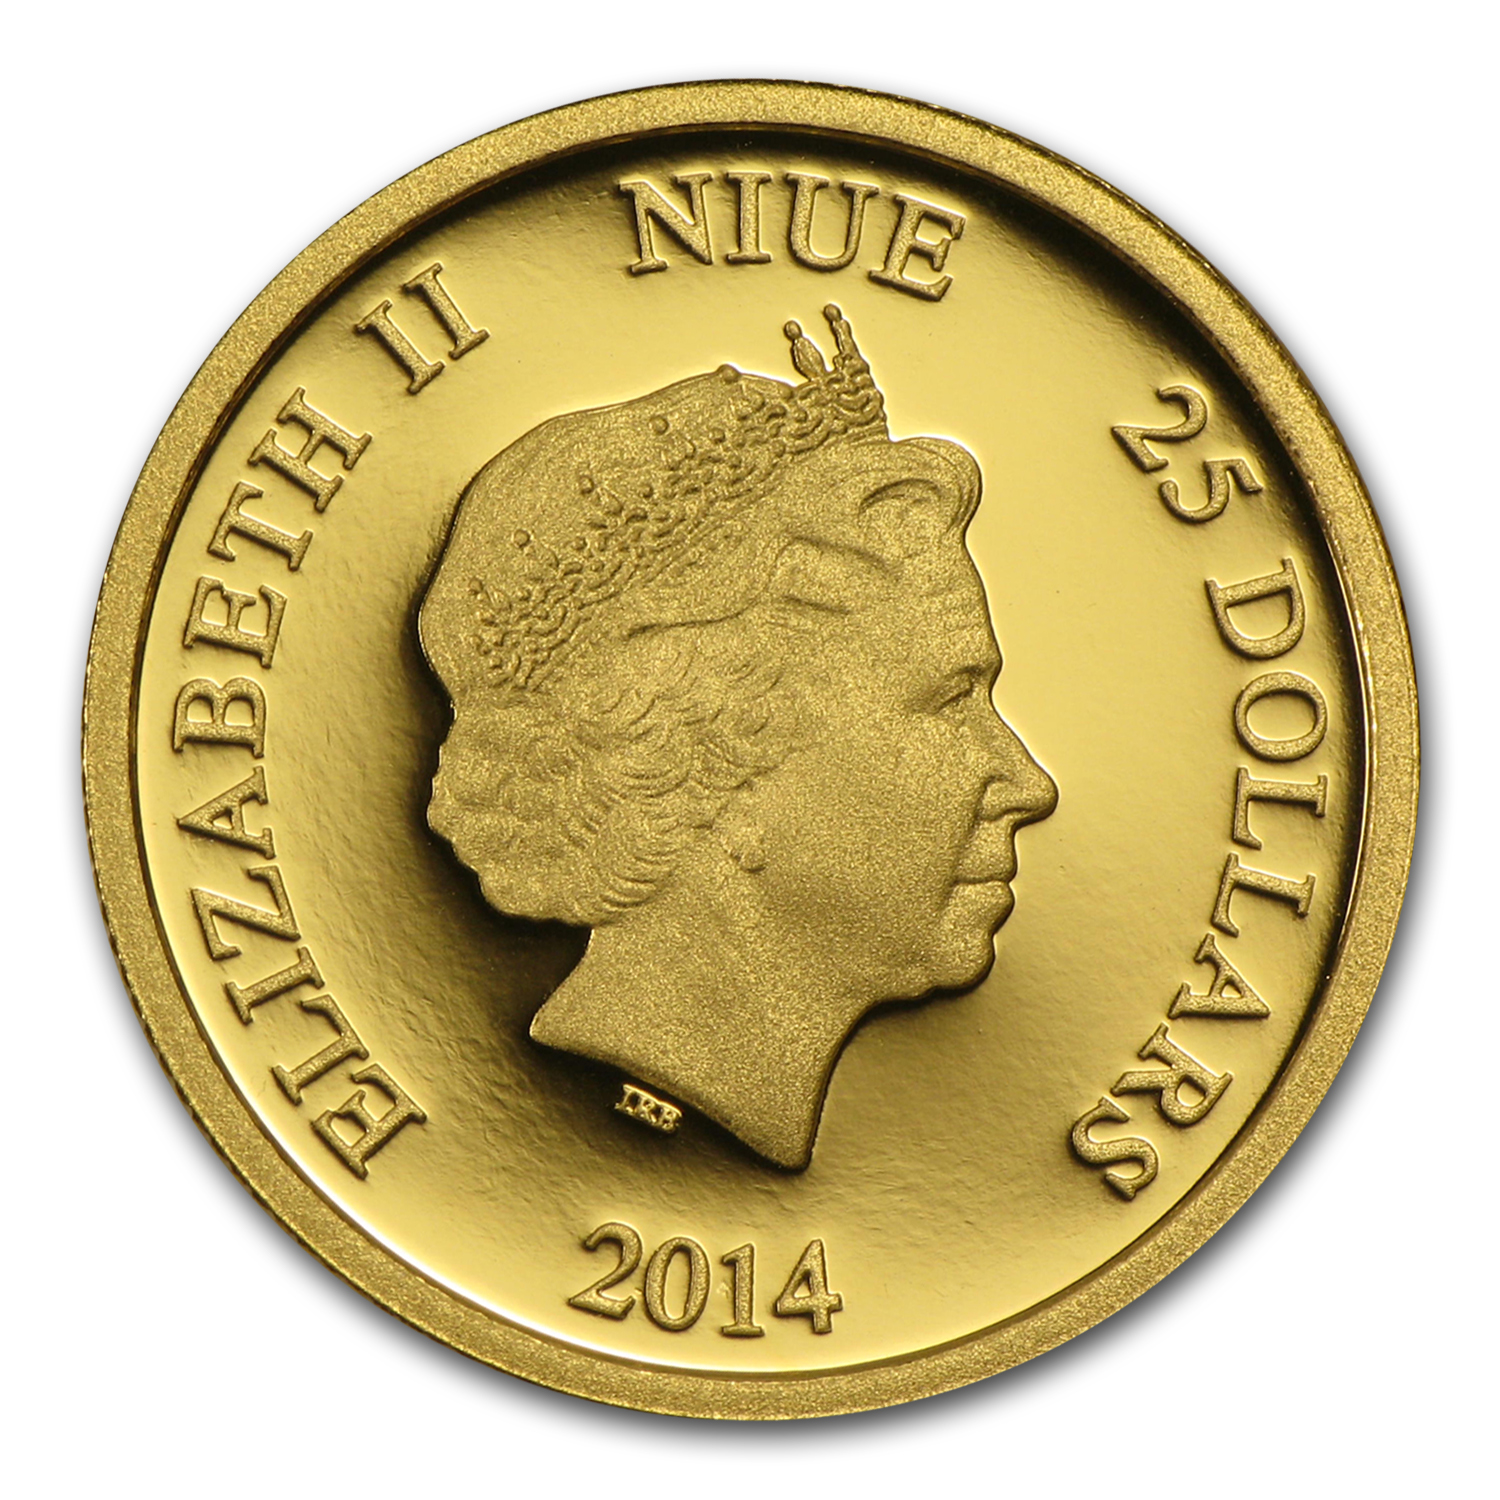 2014 Niue 1/4 oz Proof Gold $25 Disney Mickey Mouse